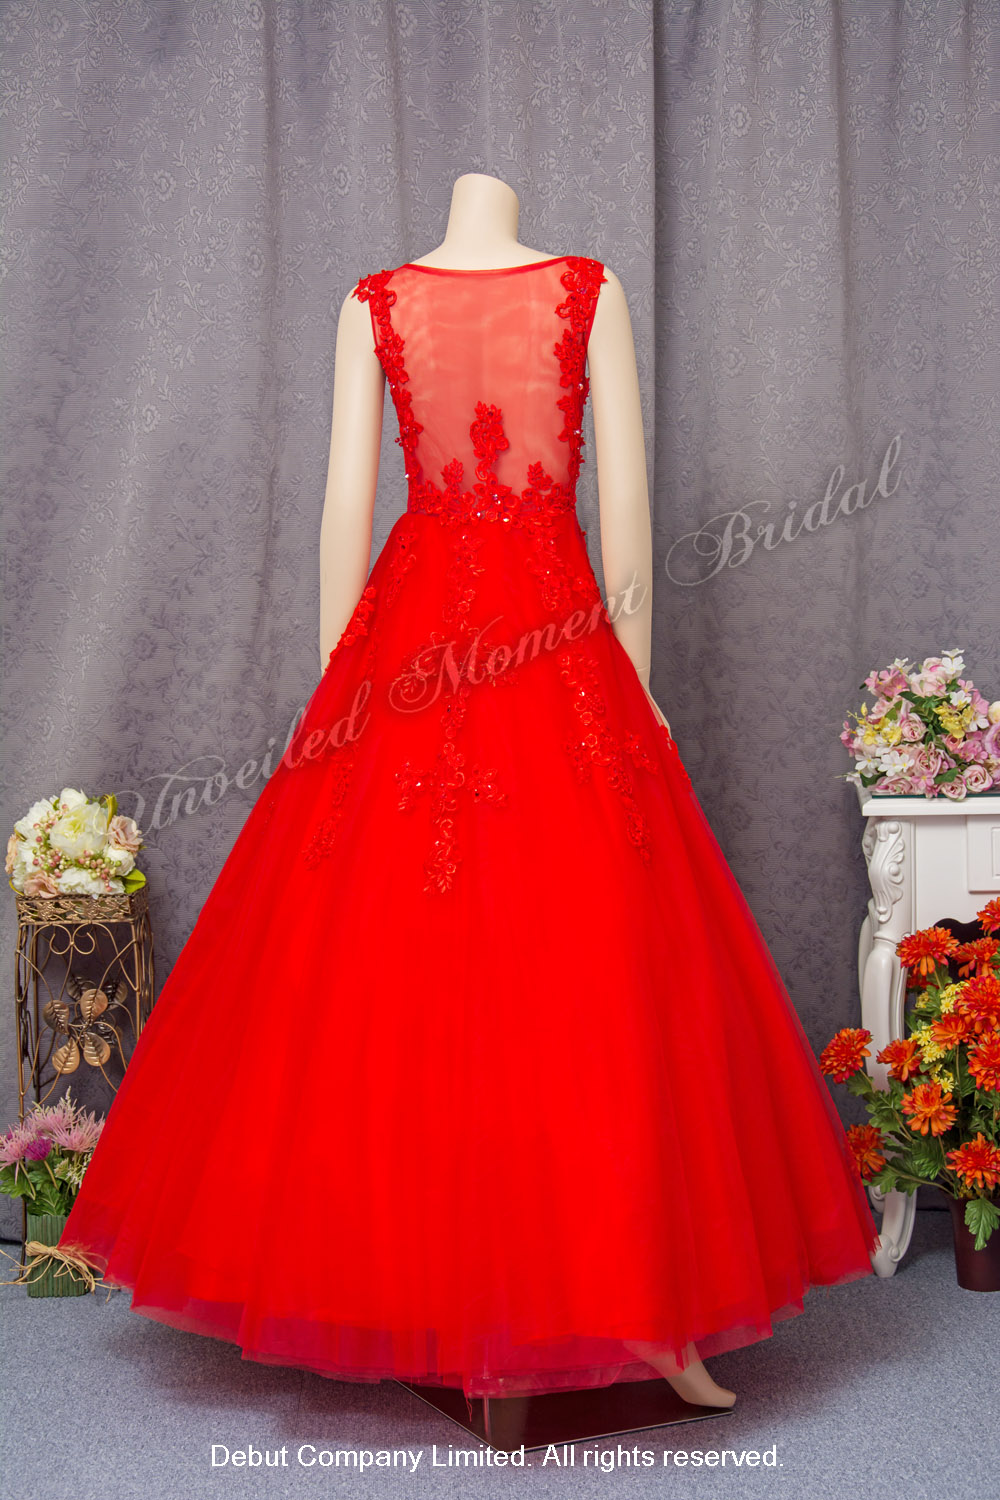 Low-back, see-through, ball evening dress with sweet heart neckline and lace embellishments. Colour: Red. 蕾絲釘珠, 心形胸, 透視美背, 紅色公主傘裙晚裝